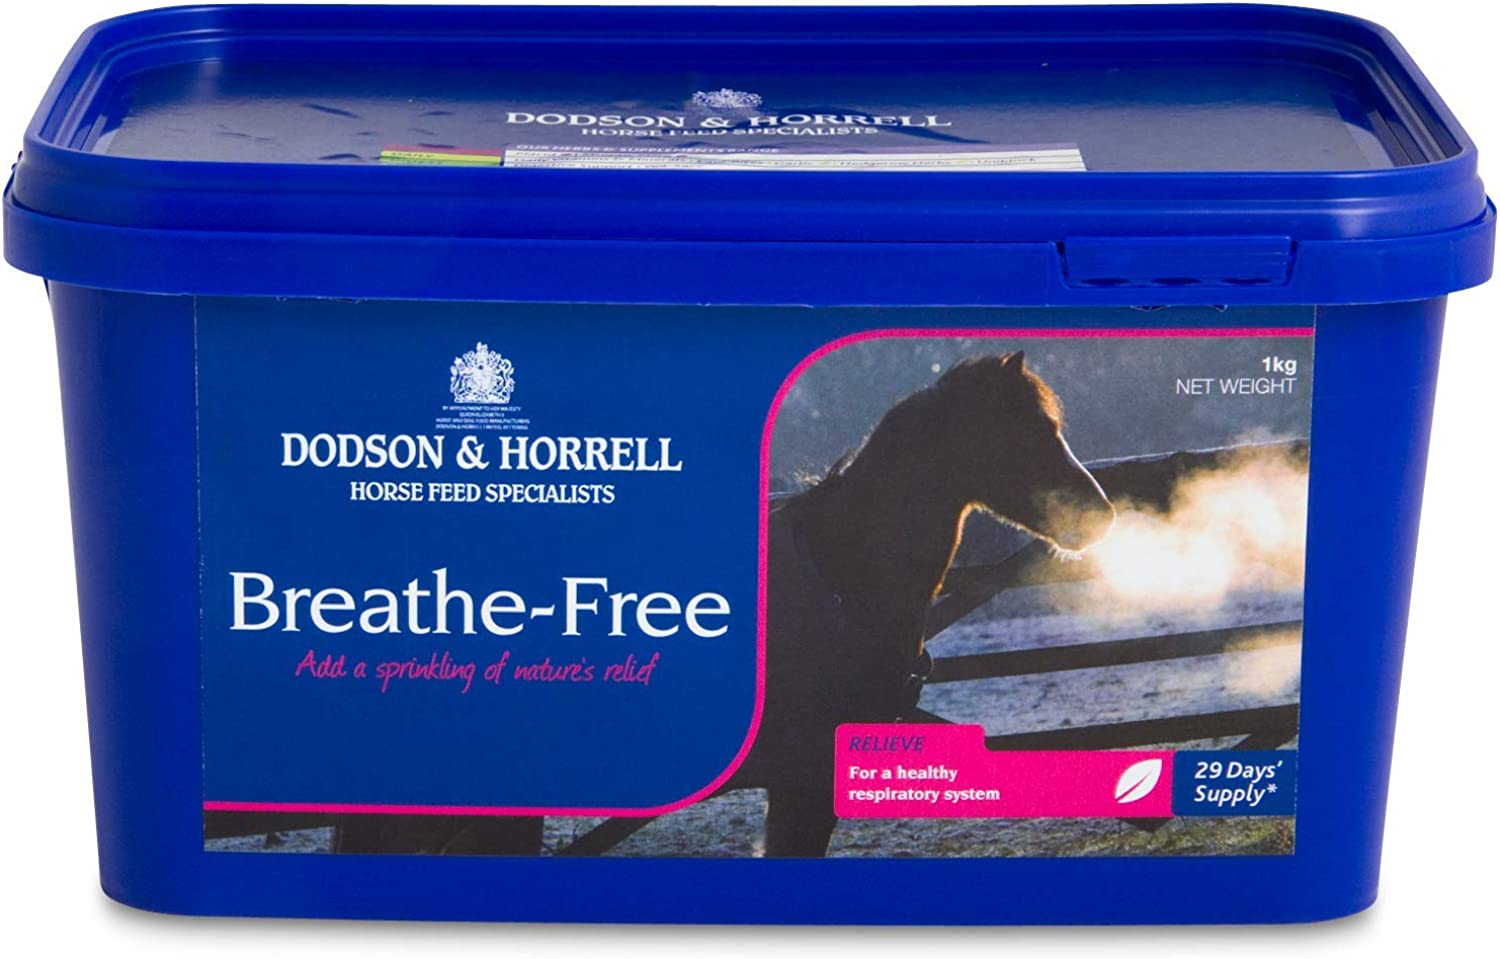 Dodson & Horrell BreatheFree Respiratory Horse Supplement 1kg (Pack of 4)